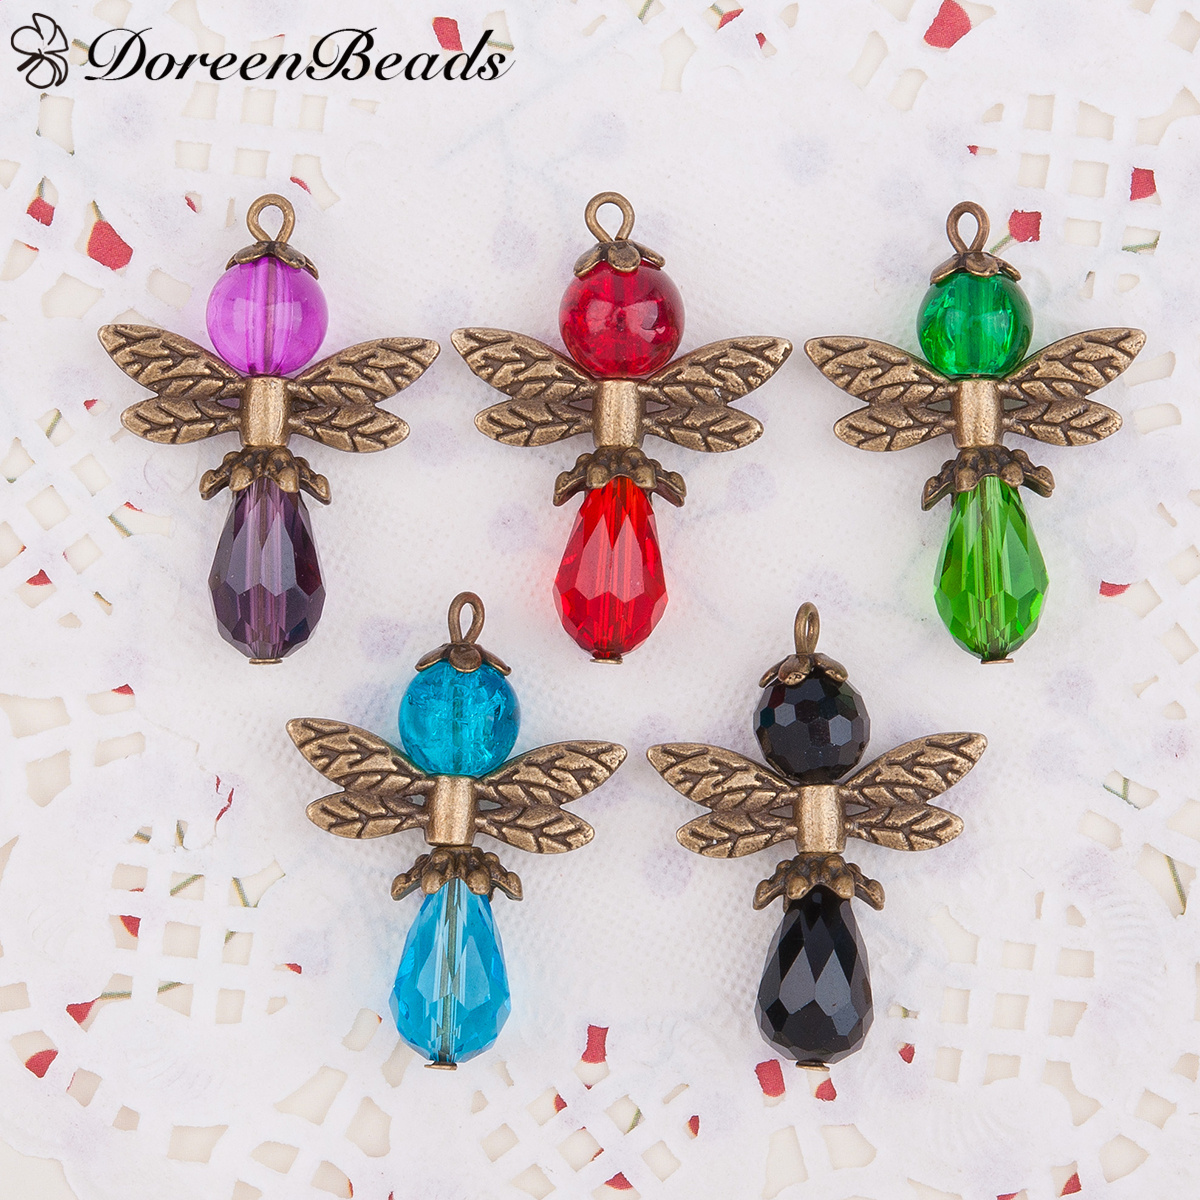 Guardian Angel Wing Charms Pendants Drop Antique Bronze With Glass Multicolor Bead 3.1cm x 2.2cm,1 Set(5 PCs/Set)